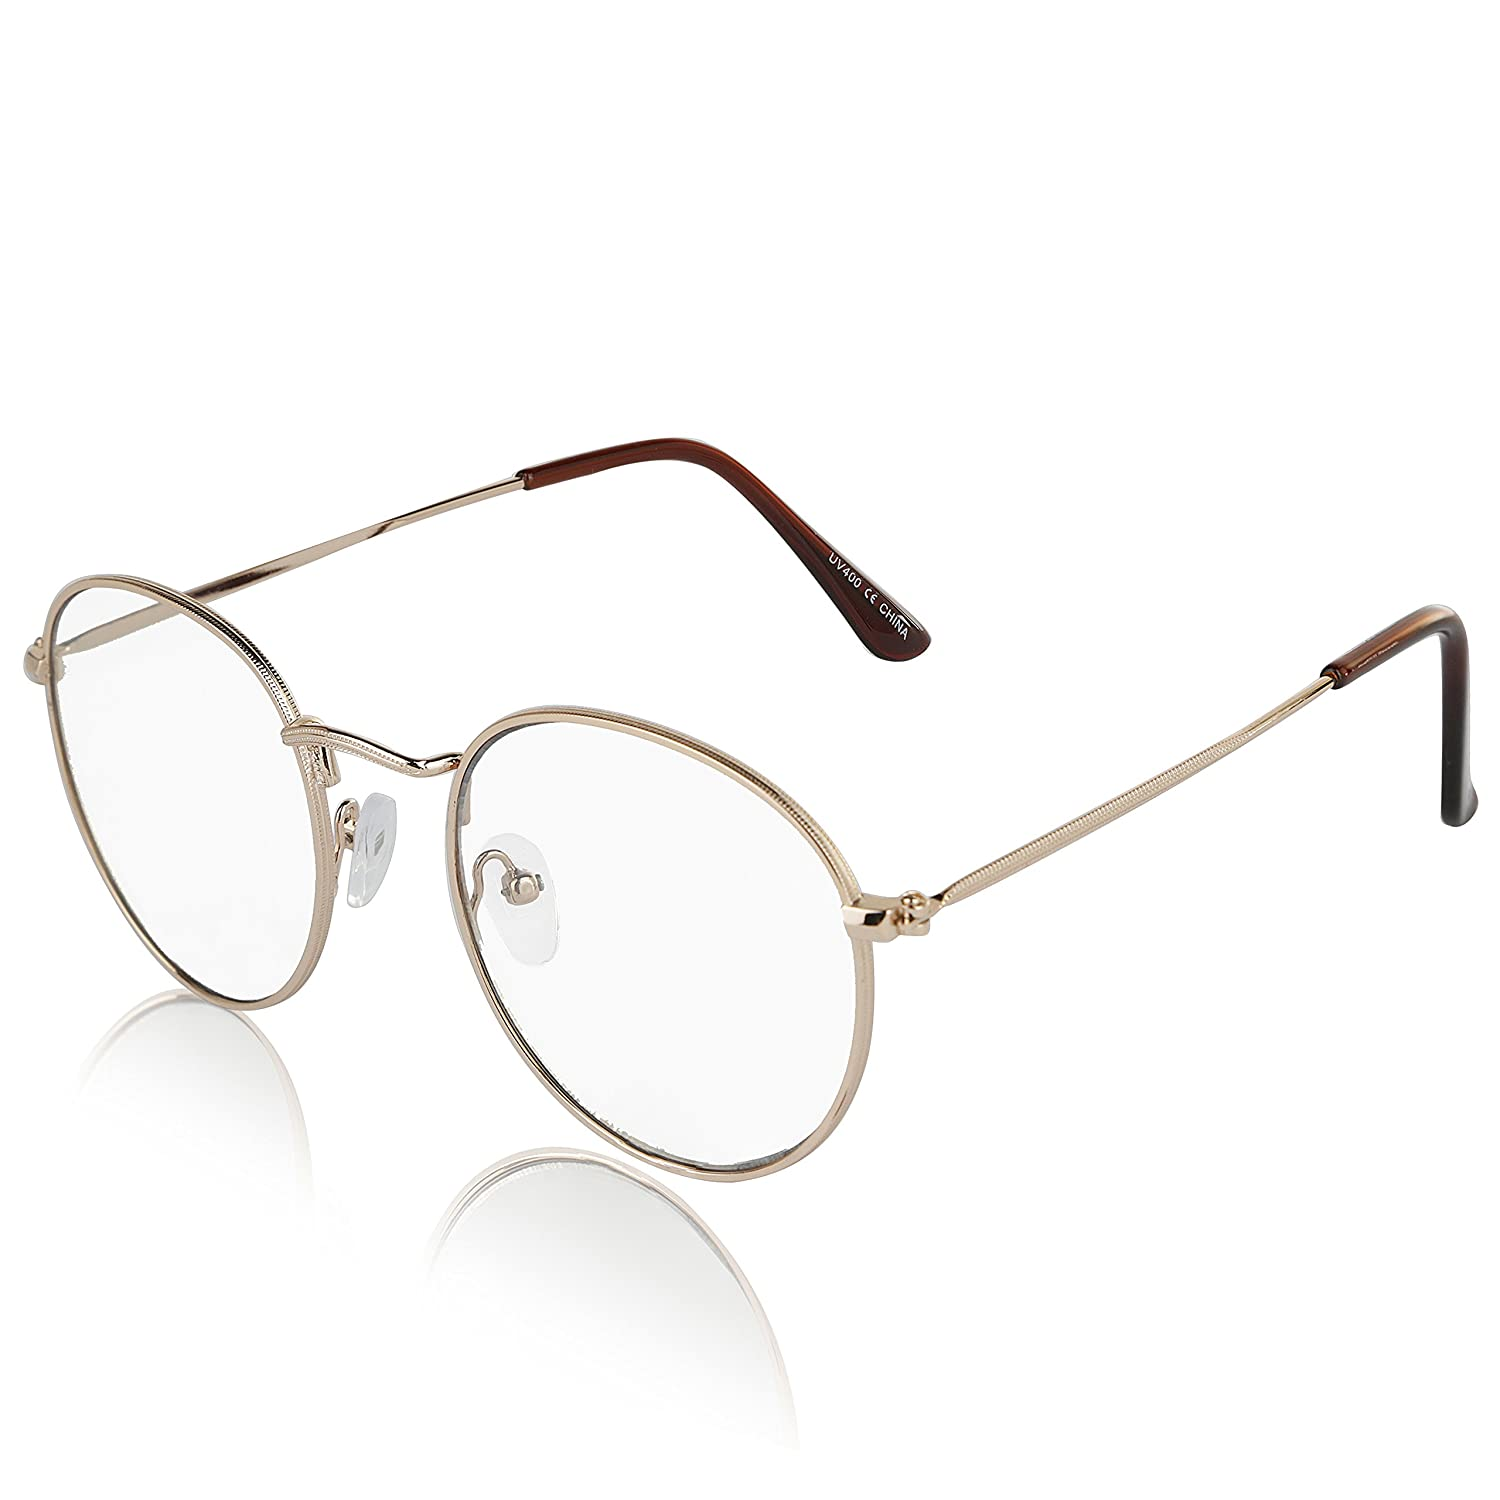 f4c0384d06c Amazon.com  Non Prescription Retro Fake Clear Lens Gold Metal Frame  Eyeglasses Woman UV400  Clothing